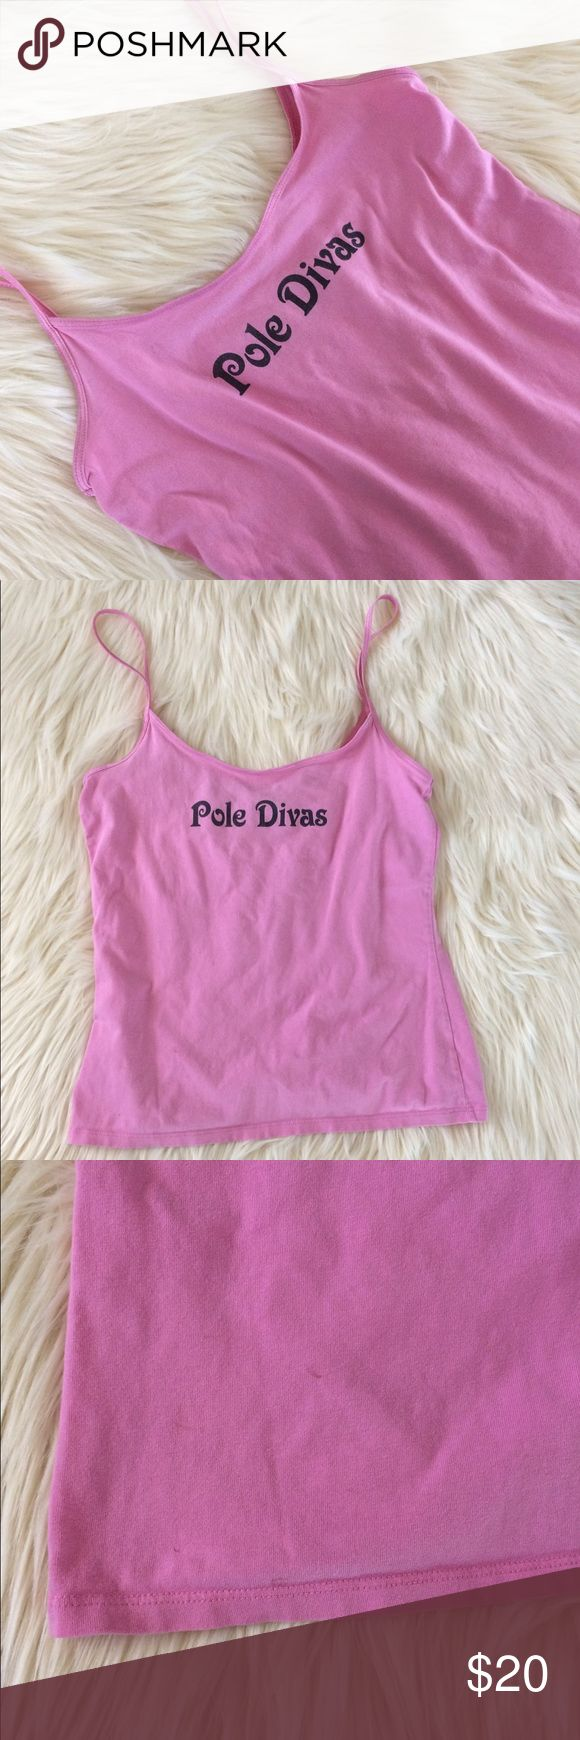 """Vintage Funny Tank Pink graphic tank features mermaid on the back and saying """"Pole Diva"""" on the front. Women's size Small. Vintage. Minor discoloration shown 3rd pic. Always open to offers, awesome find!! Vintage Tops Tank Tops"""